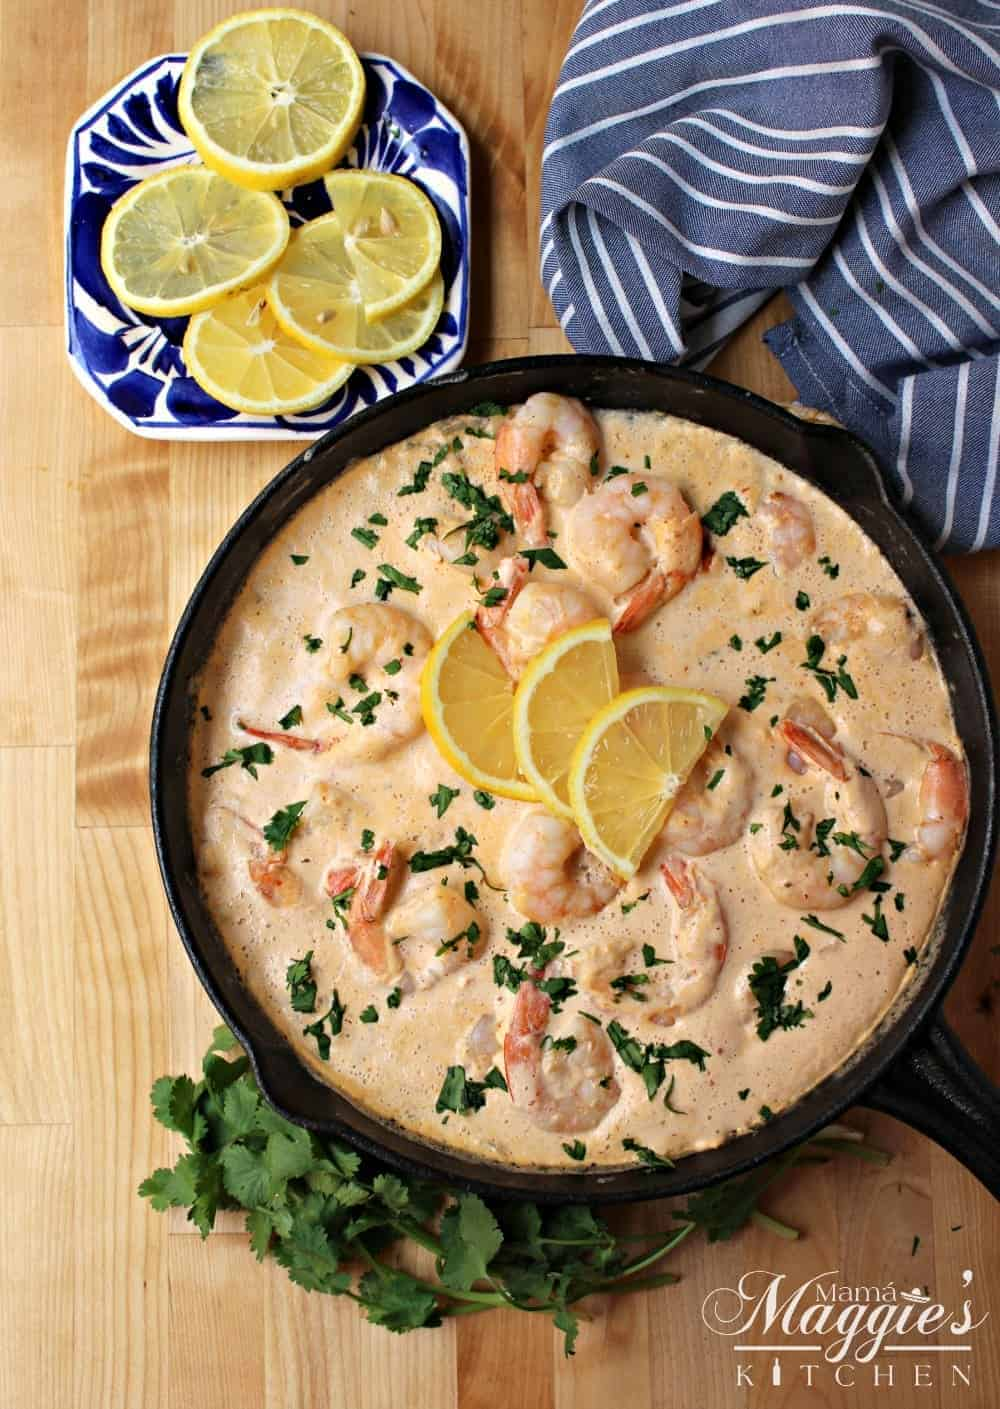 Camarones en Crema Chipotle in a black iron skillet topped with slices of yellow lemon and surrounded by a blue kitchen towel and green cilantro.